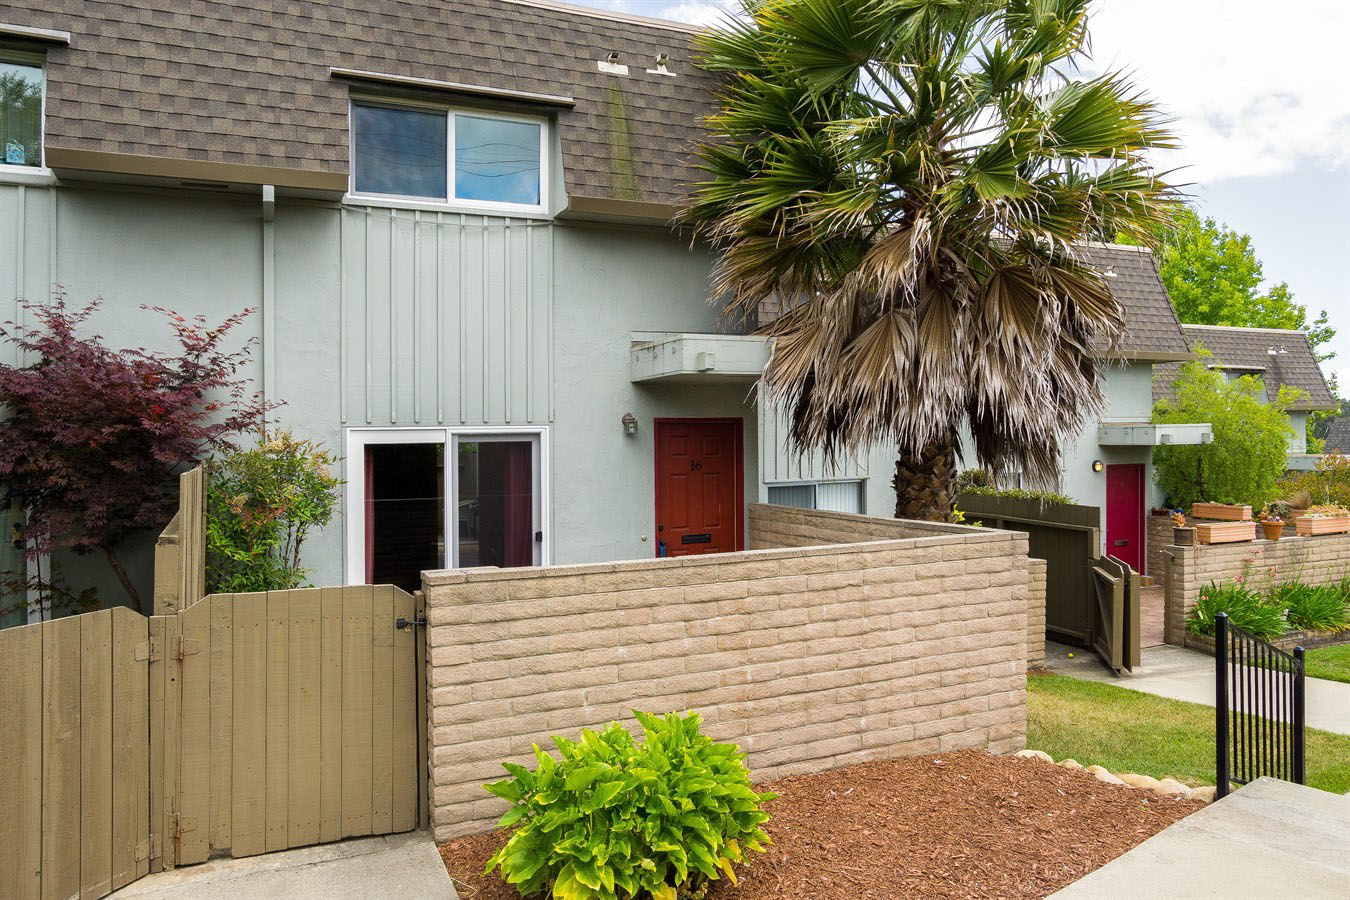 2 Bedroom Condo in Aptos close to Aptos Village, Nisene Marks State Park, Seacliff State Beach, and Highway 1.  Sunlit with hardwood floors you don't want to miss this Aptos Condo for Sale!  Presented by Sam Bird-Robinson, Santa Cruz Realtor.